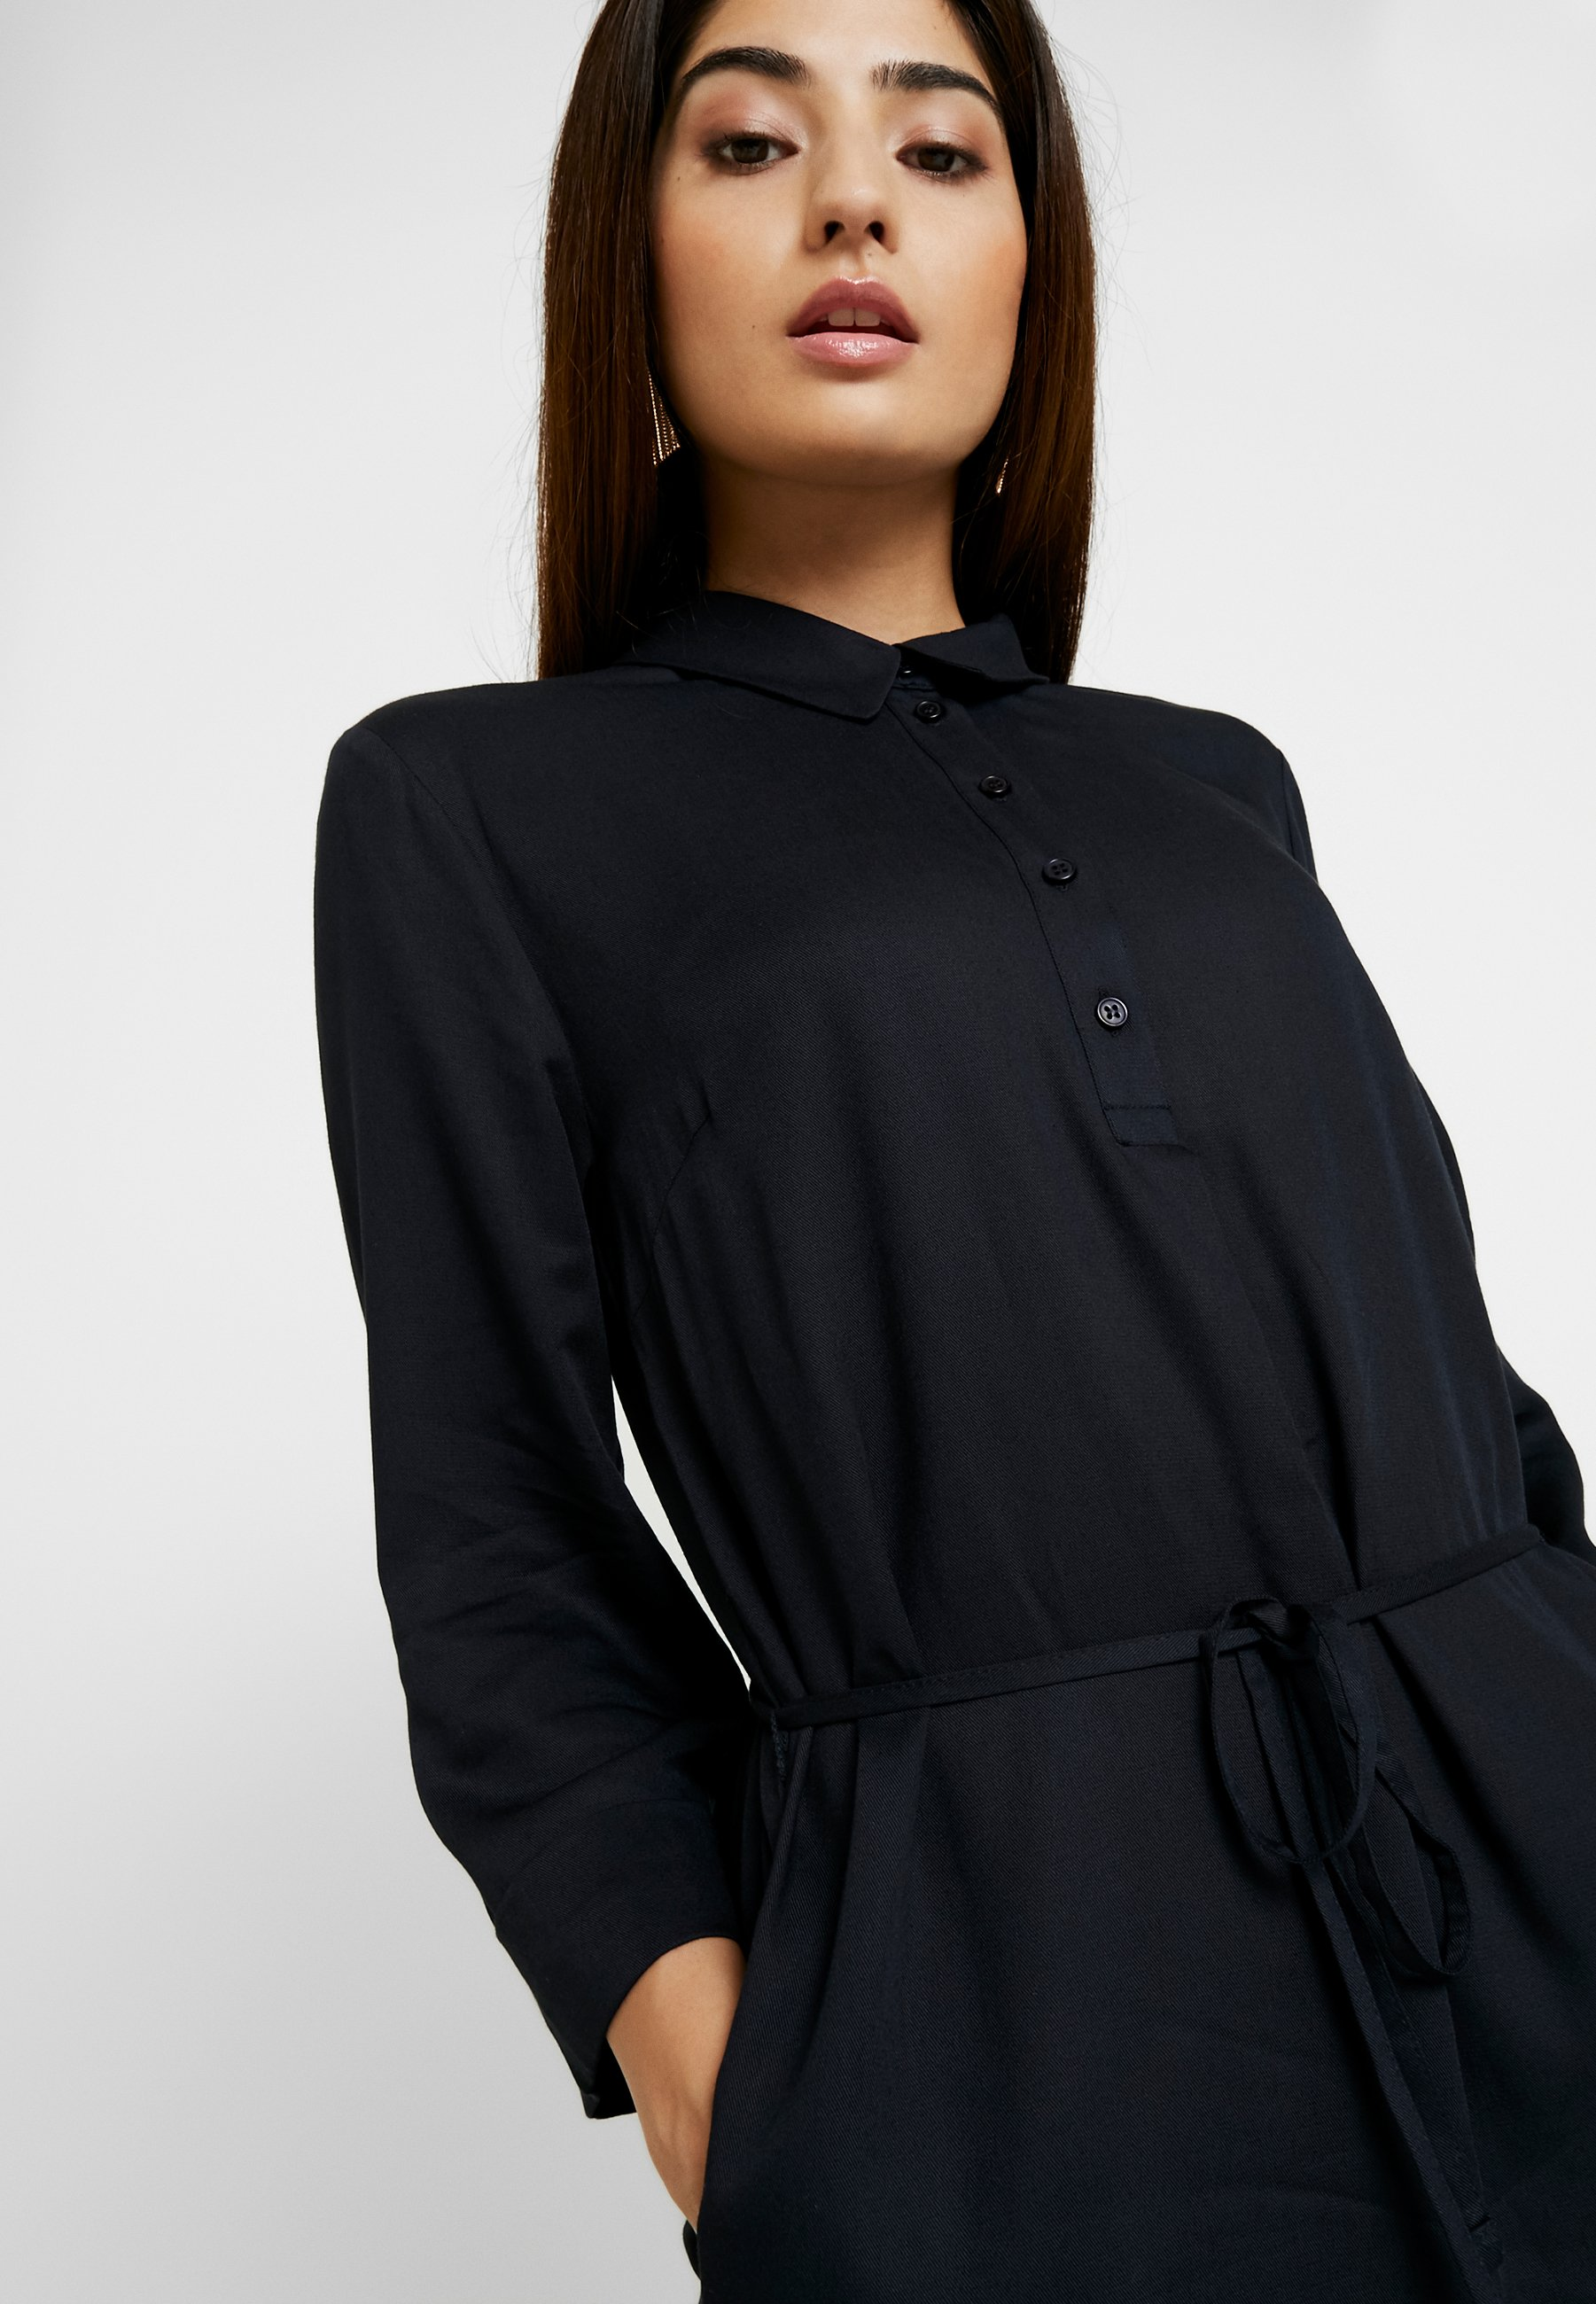 DressAbito Navy Blouse A Re Dark draft Camicia TXiPOZku